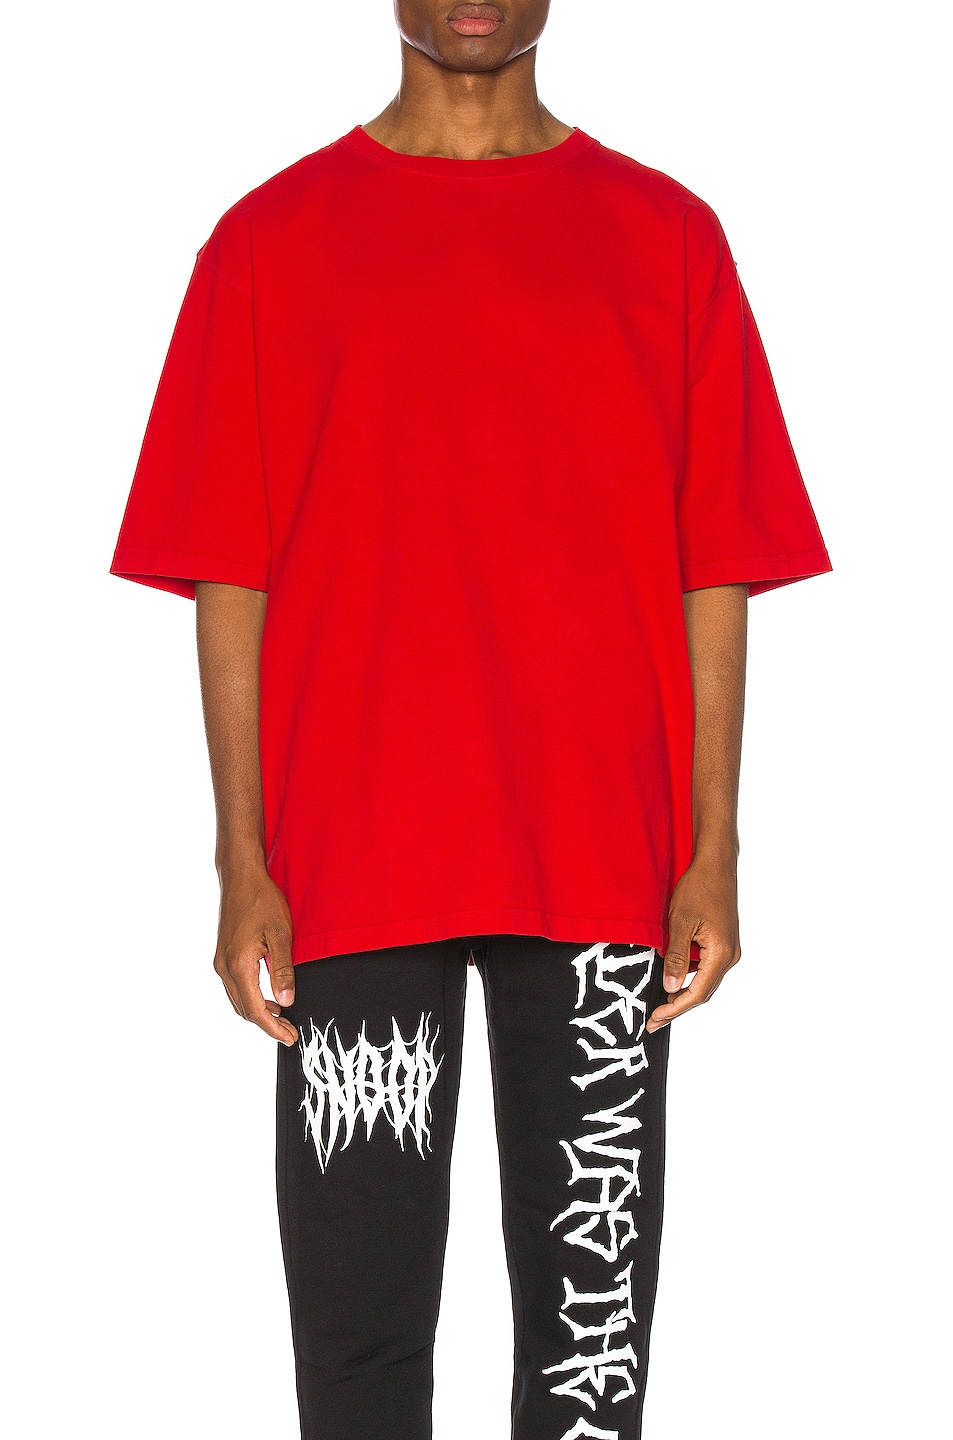 Image 2 of Warren Lotas Oversized Patch Tee in Red